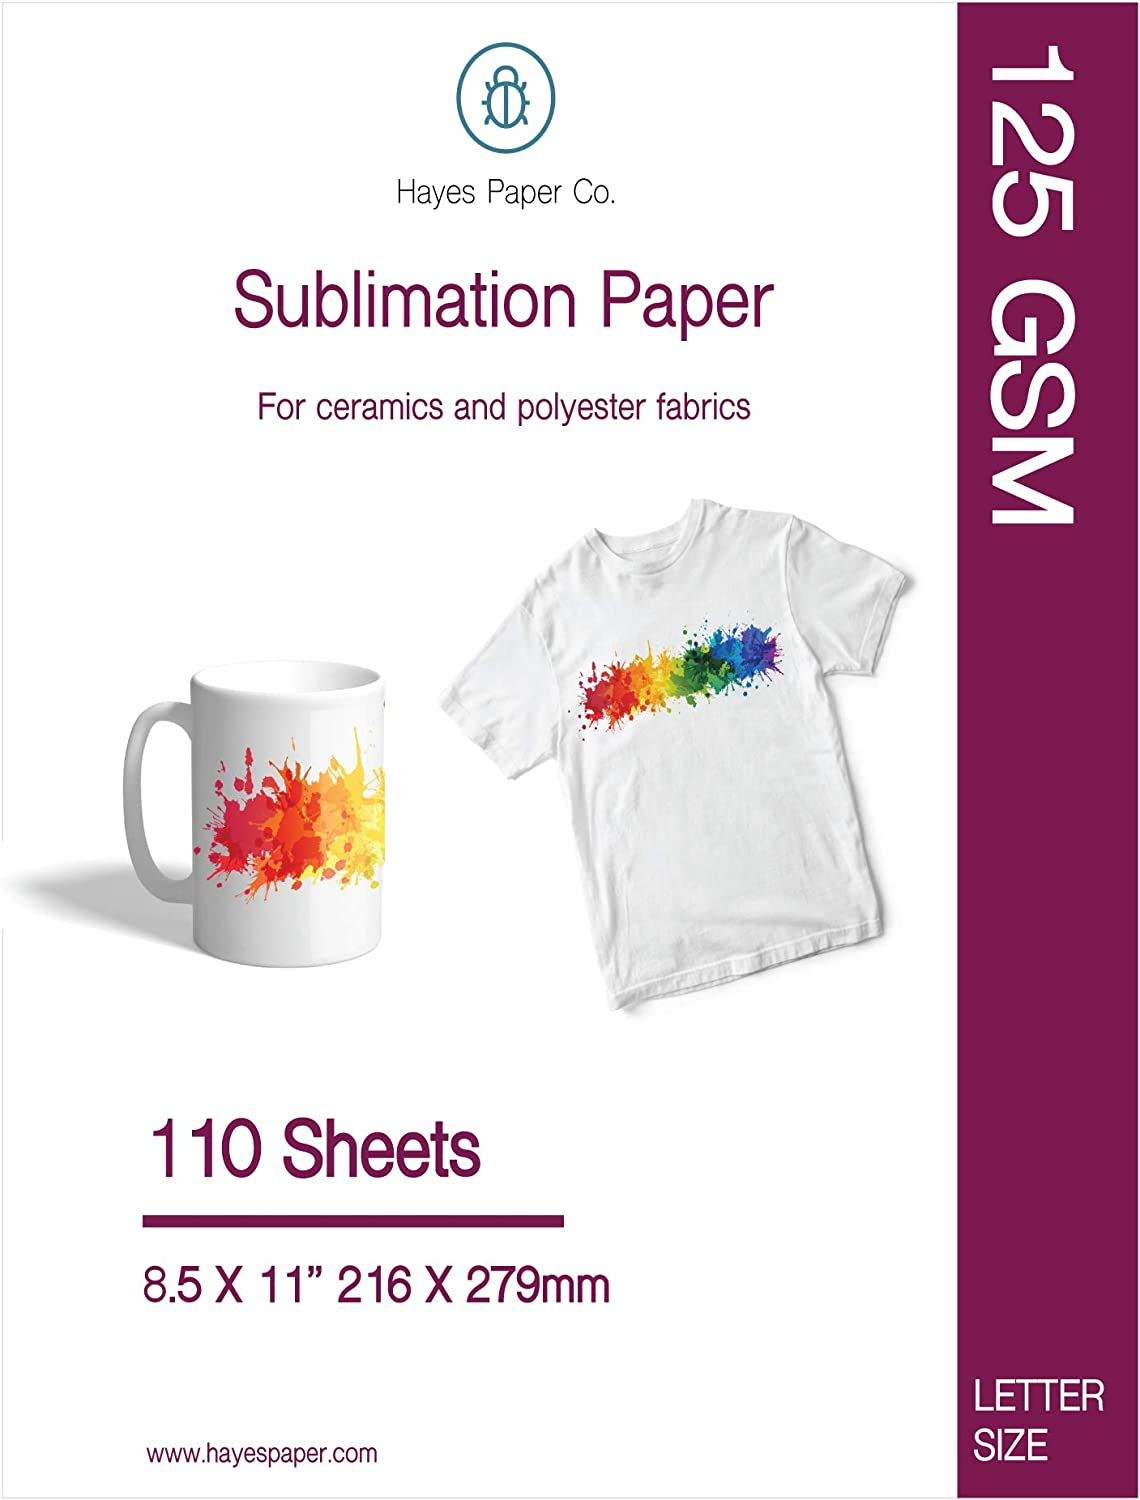 HAYES PAPER CO. Sublimation Paper for Heat Transfer onto Shirts, Ceramic Mugs, Works with All Inkjet Printers, 8.5x11 in. 110 Sheets, 125 GSM